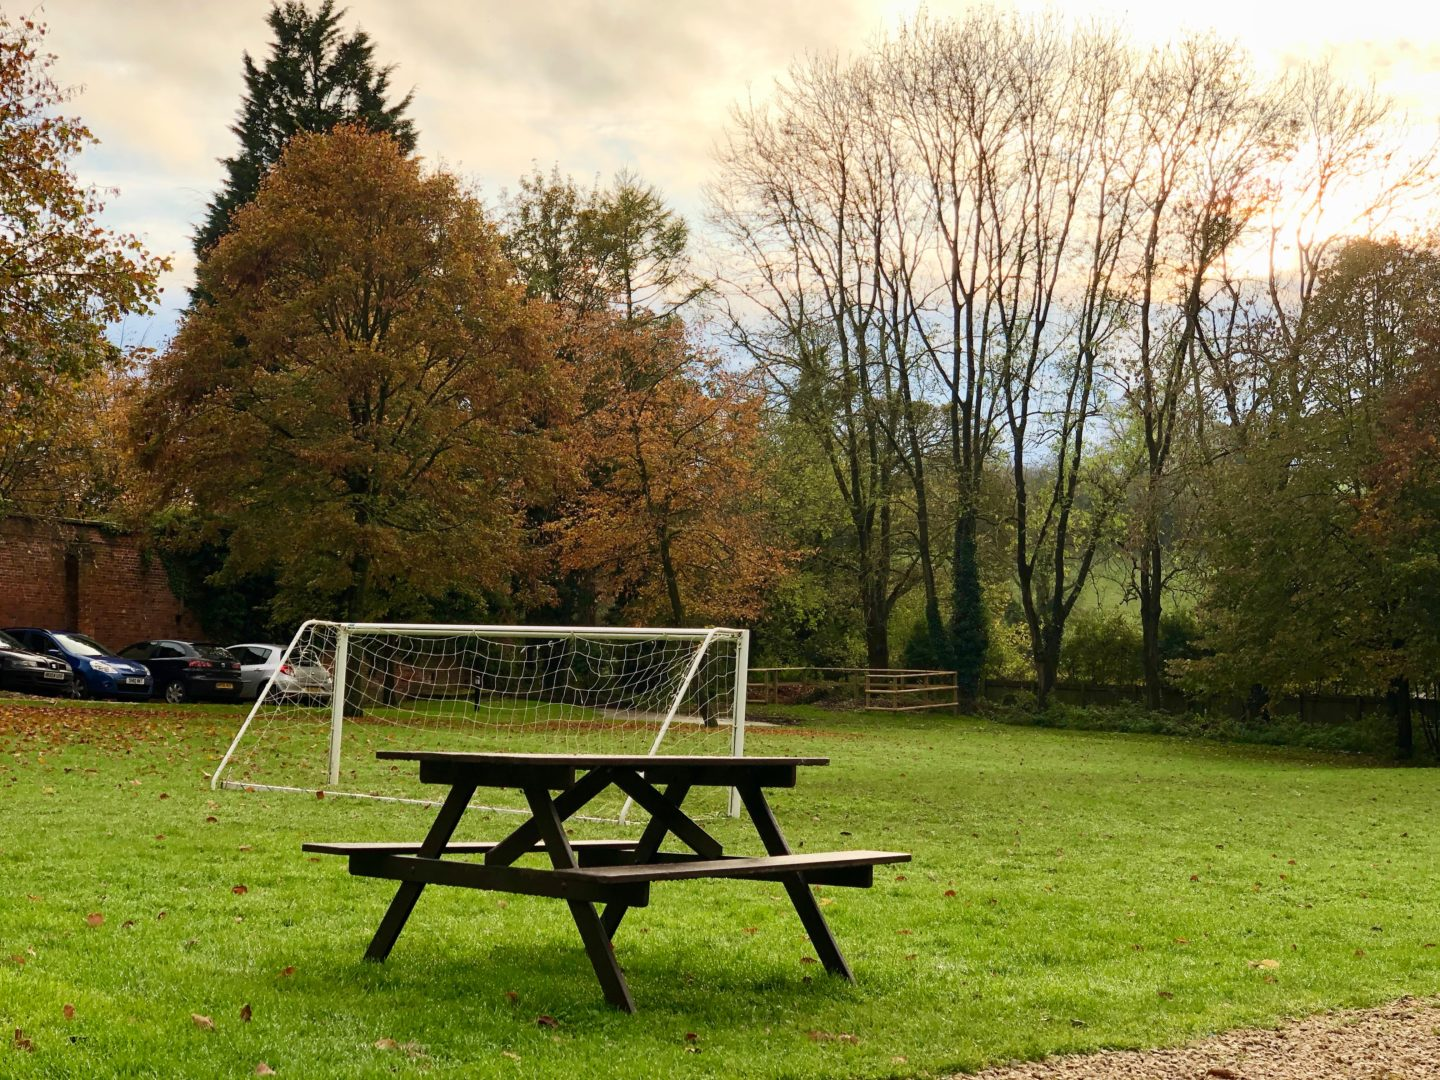 AD: Landal Sandybrook Peak District family review - a relaxing autumnal long weekend break. The football pitch at Landal Sandybrook.